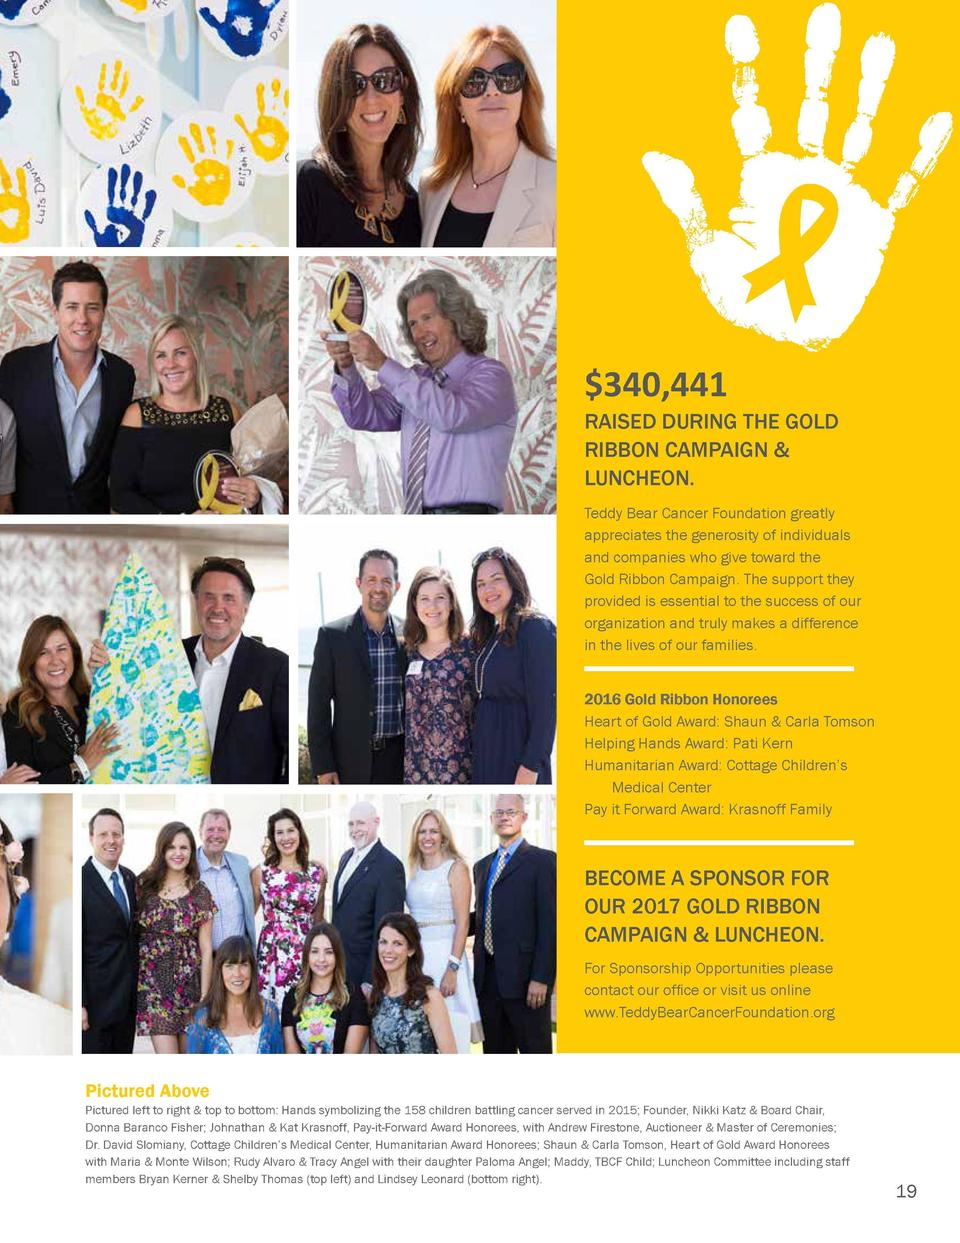 Gold Ribbon Campaign   Luncheon Teddy Bear Cancer Foundation   s 4th annual awareness and fundraising effort, the Gold Rib...